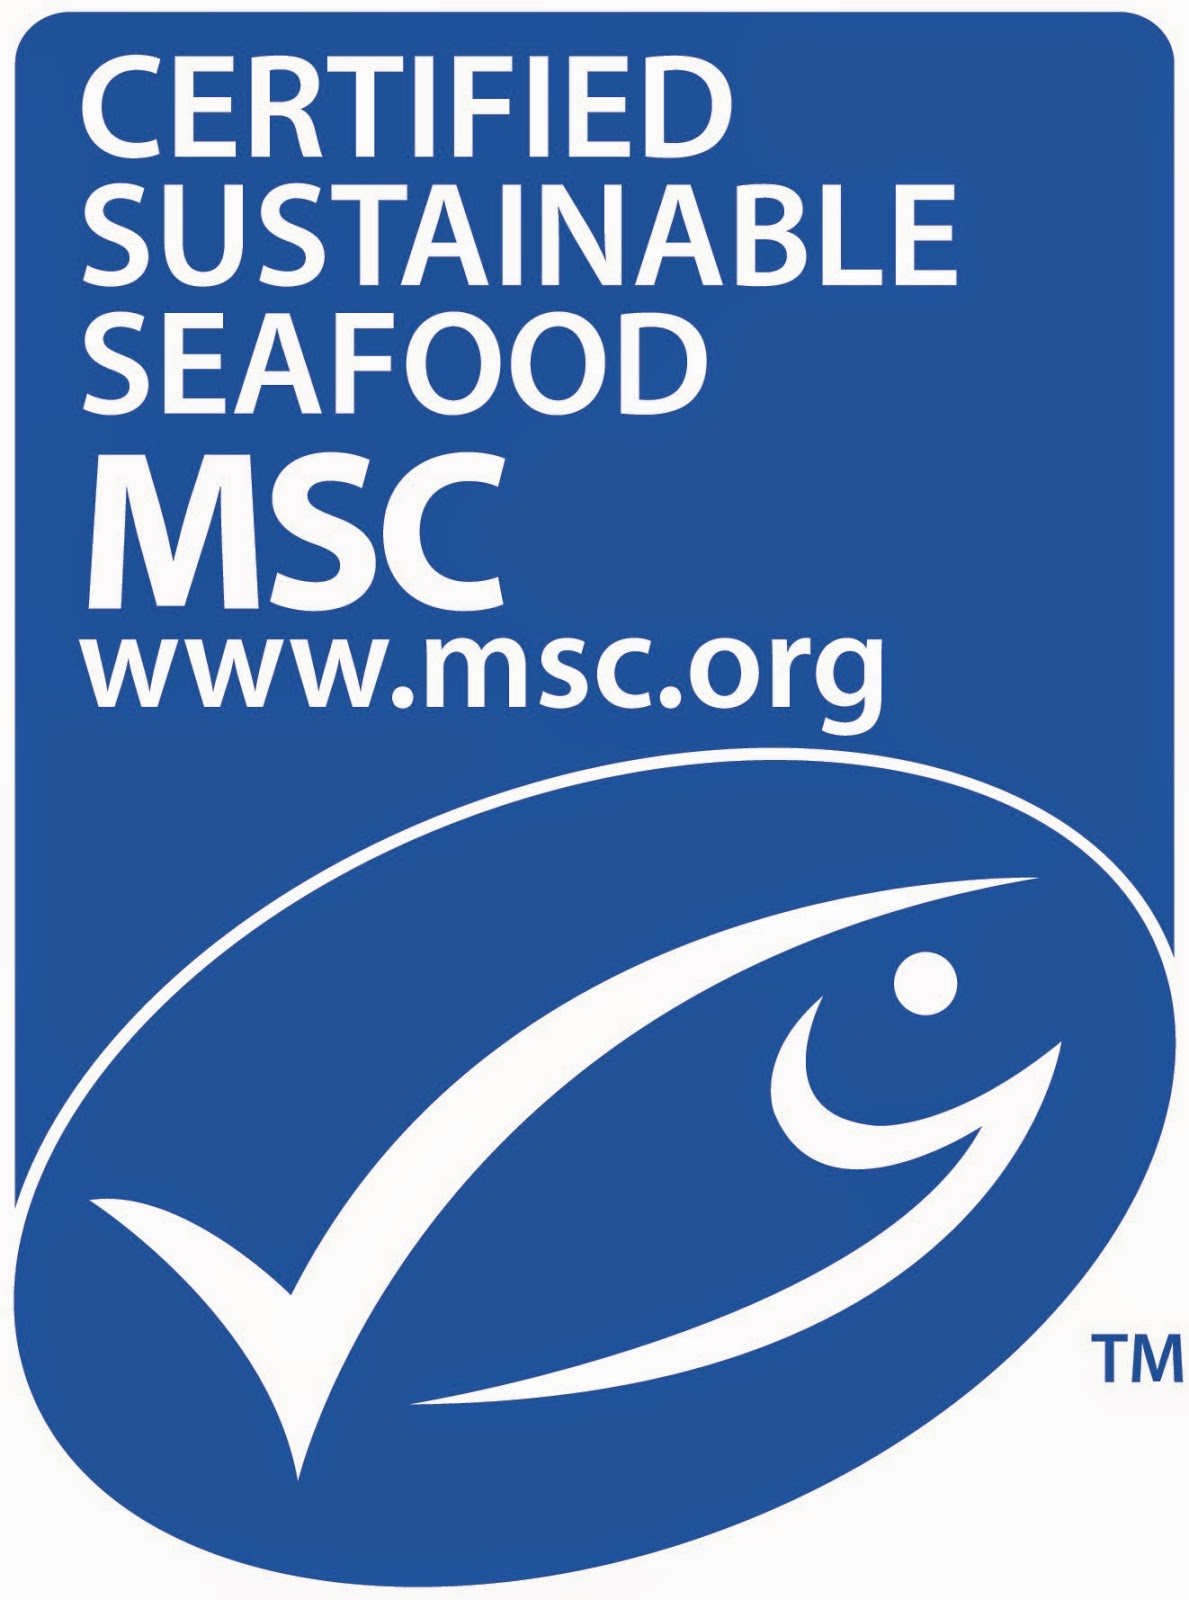 http://www.msc.org/newsroom/news/skidmore-college-is-the-first-liberal-arts-college-in-the-state-of-new-york-to-achieve-msc-certification-for-sustainable-wild-caught-seafood